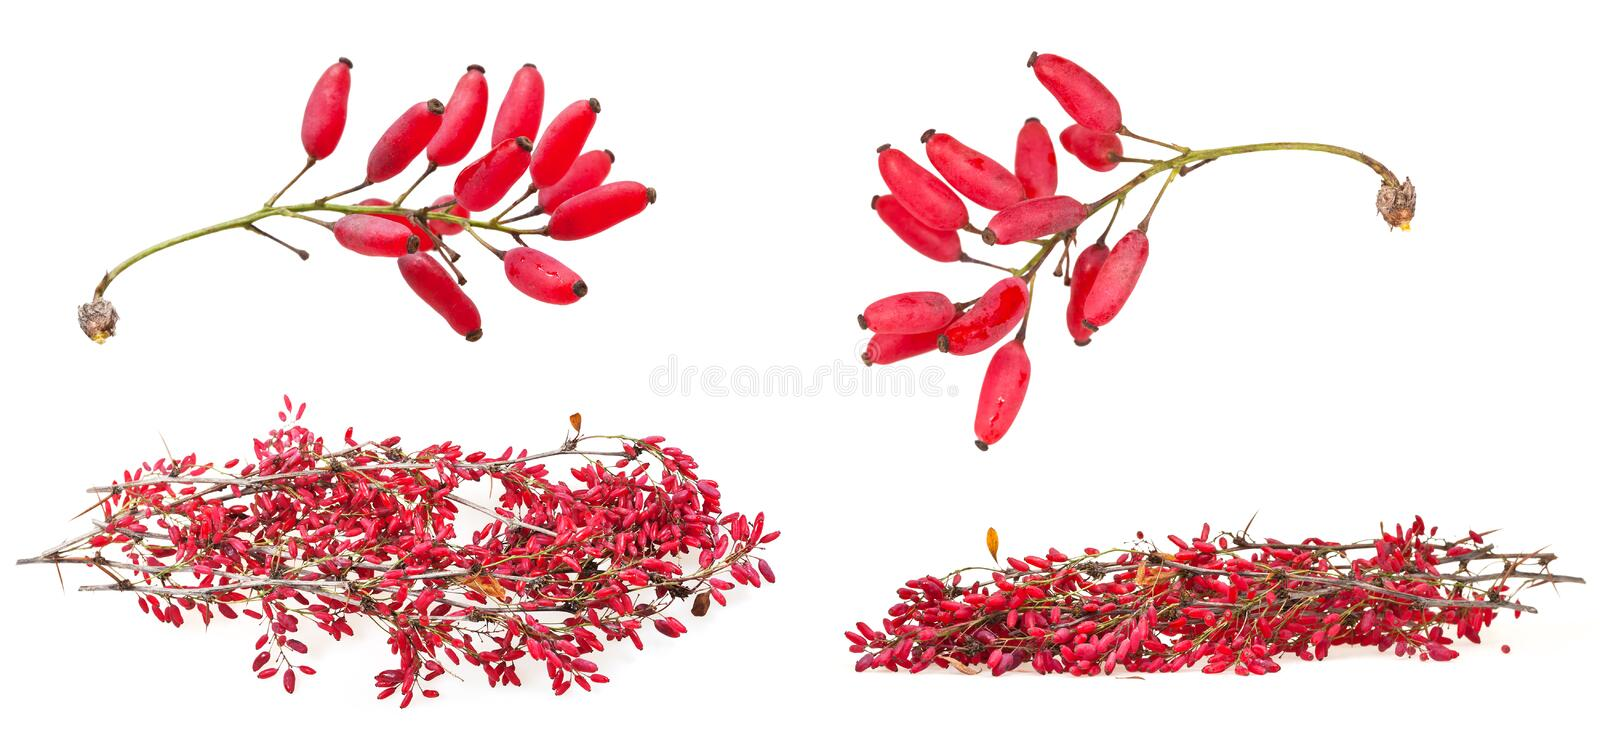 Set of red berberis shoot with ripe fruits. On white background royalty free stock photos